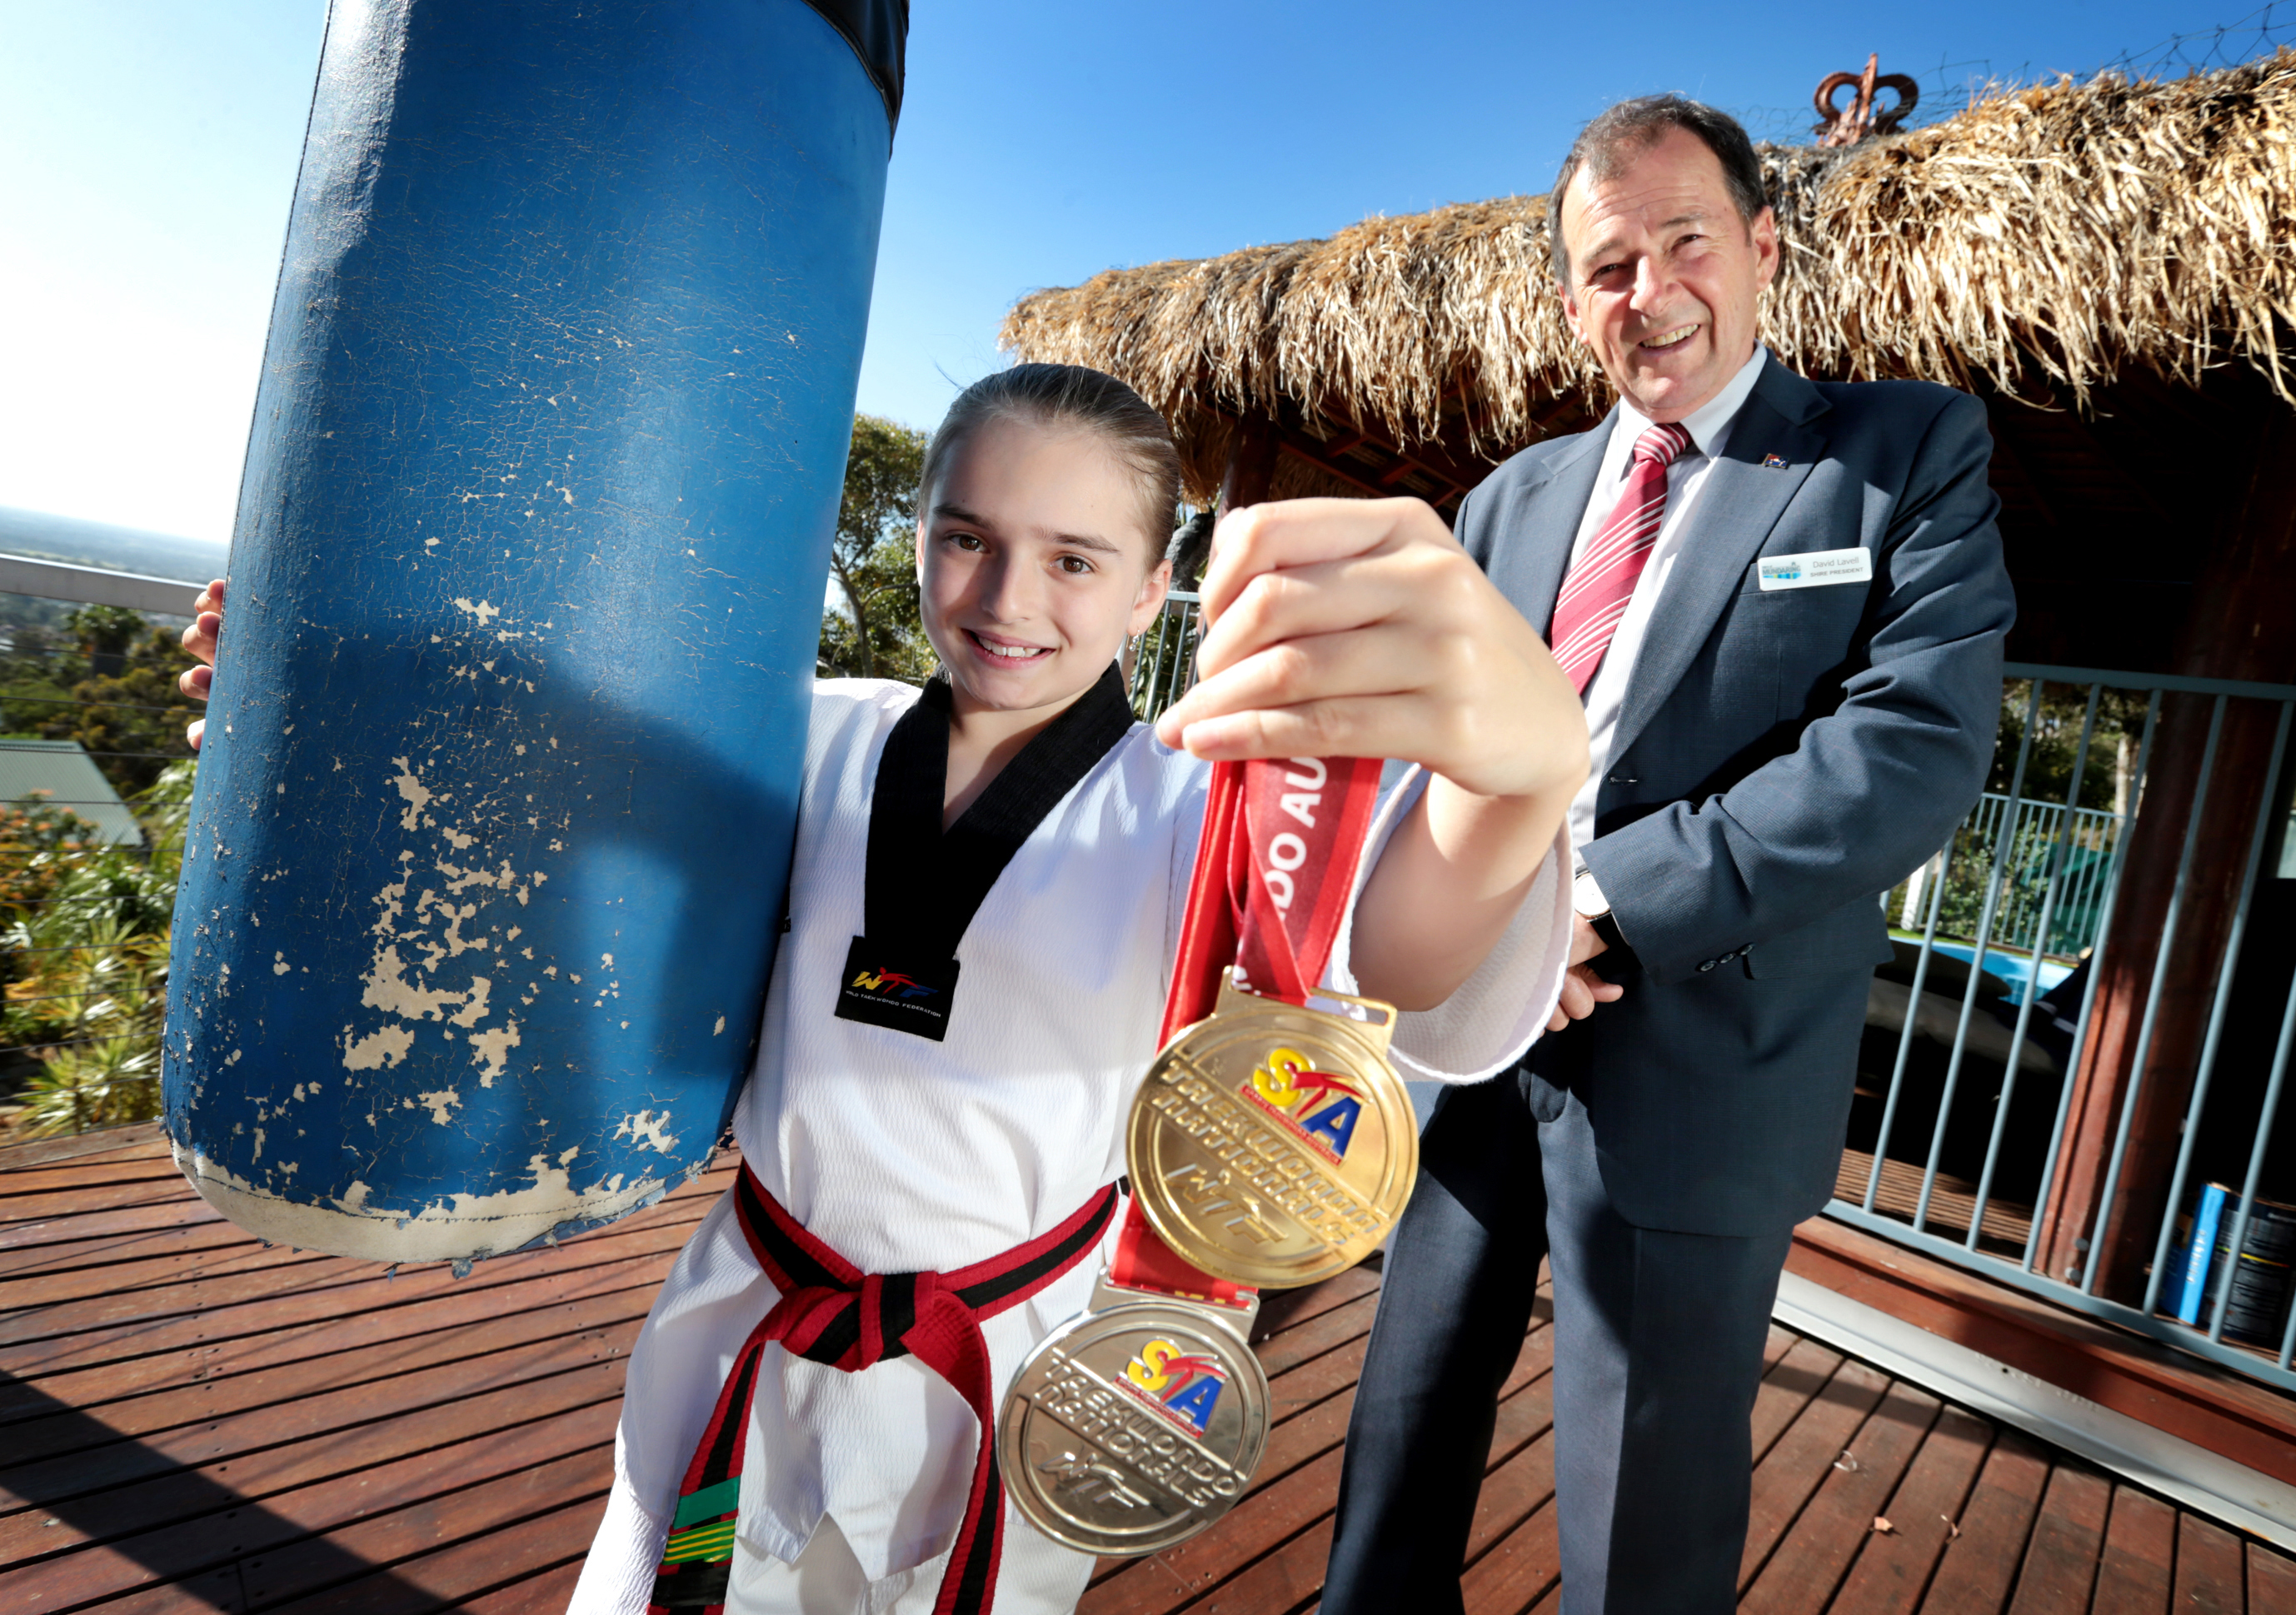 Shante Regnault (9), of Swan View, with Shire of Mundaring President David Lavell. Picture: David Baylis d461609